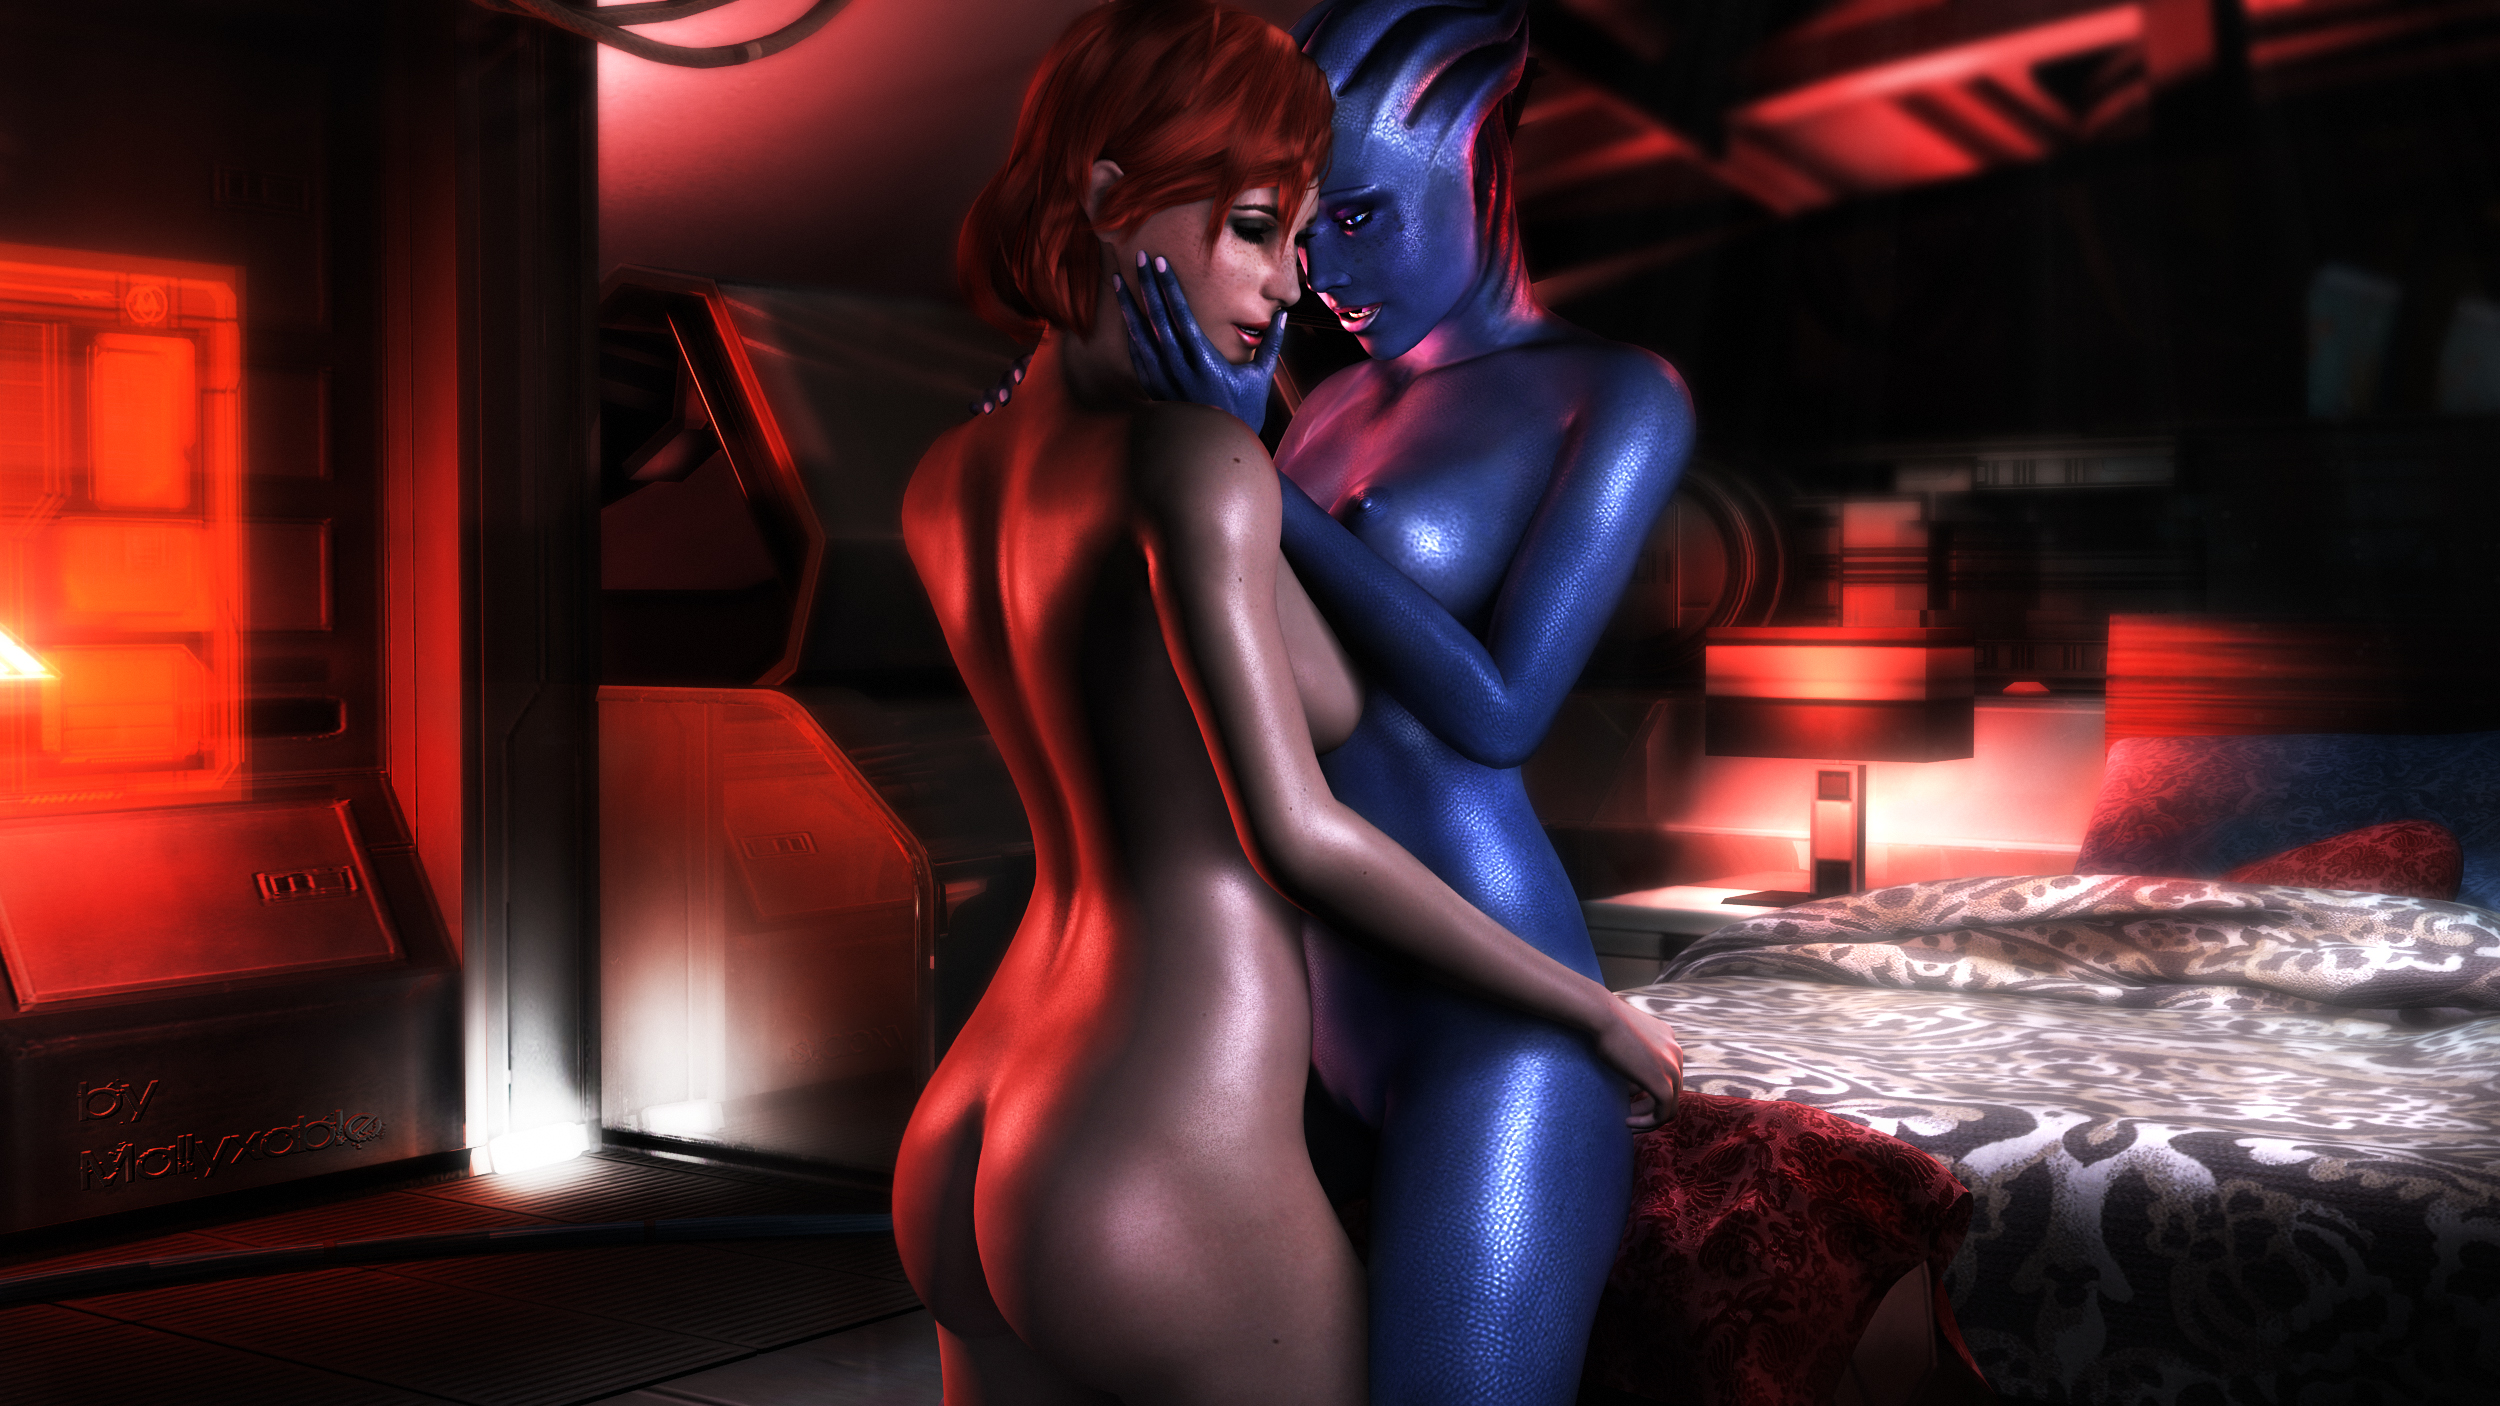 Mass effect erotic hentia comics